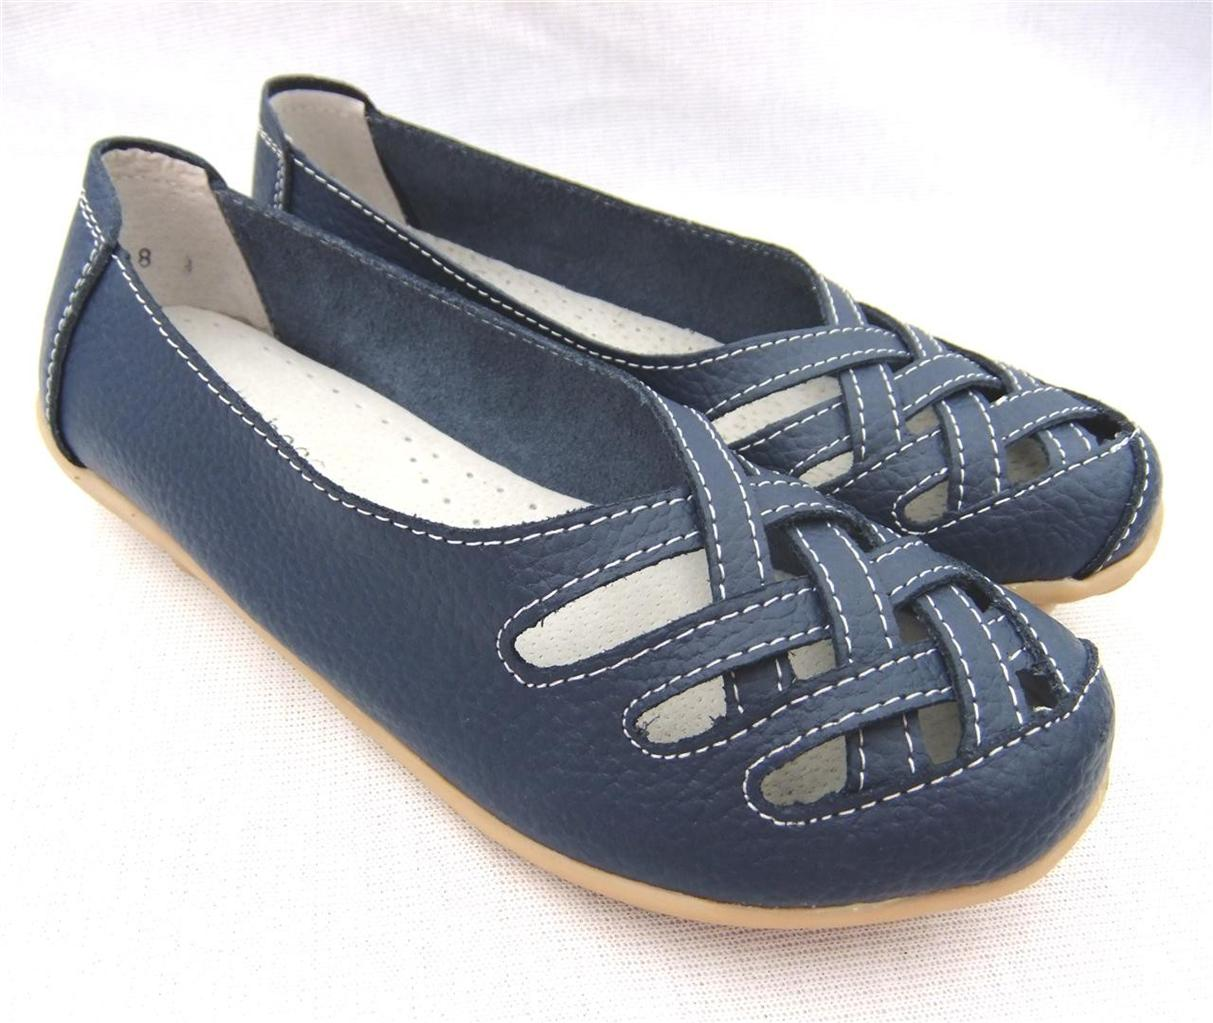 WOMENS-Ladies-Sz-7-8-9-10-BLUE-Soft-LEATHER-FLATS-Ballet-Comfort-SHOES-Work-WALK